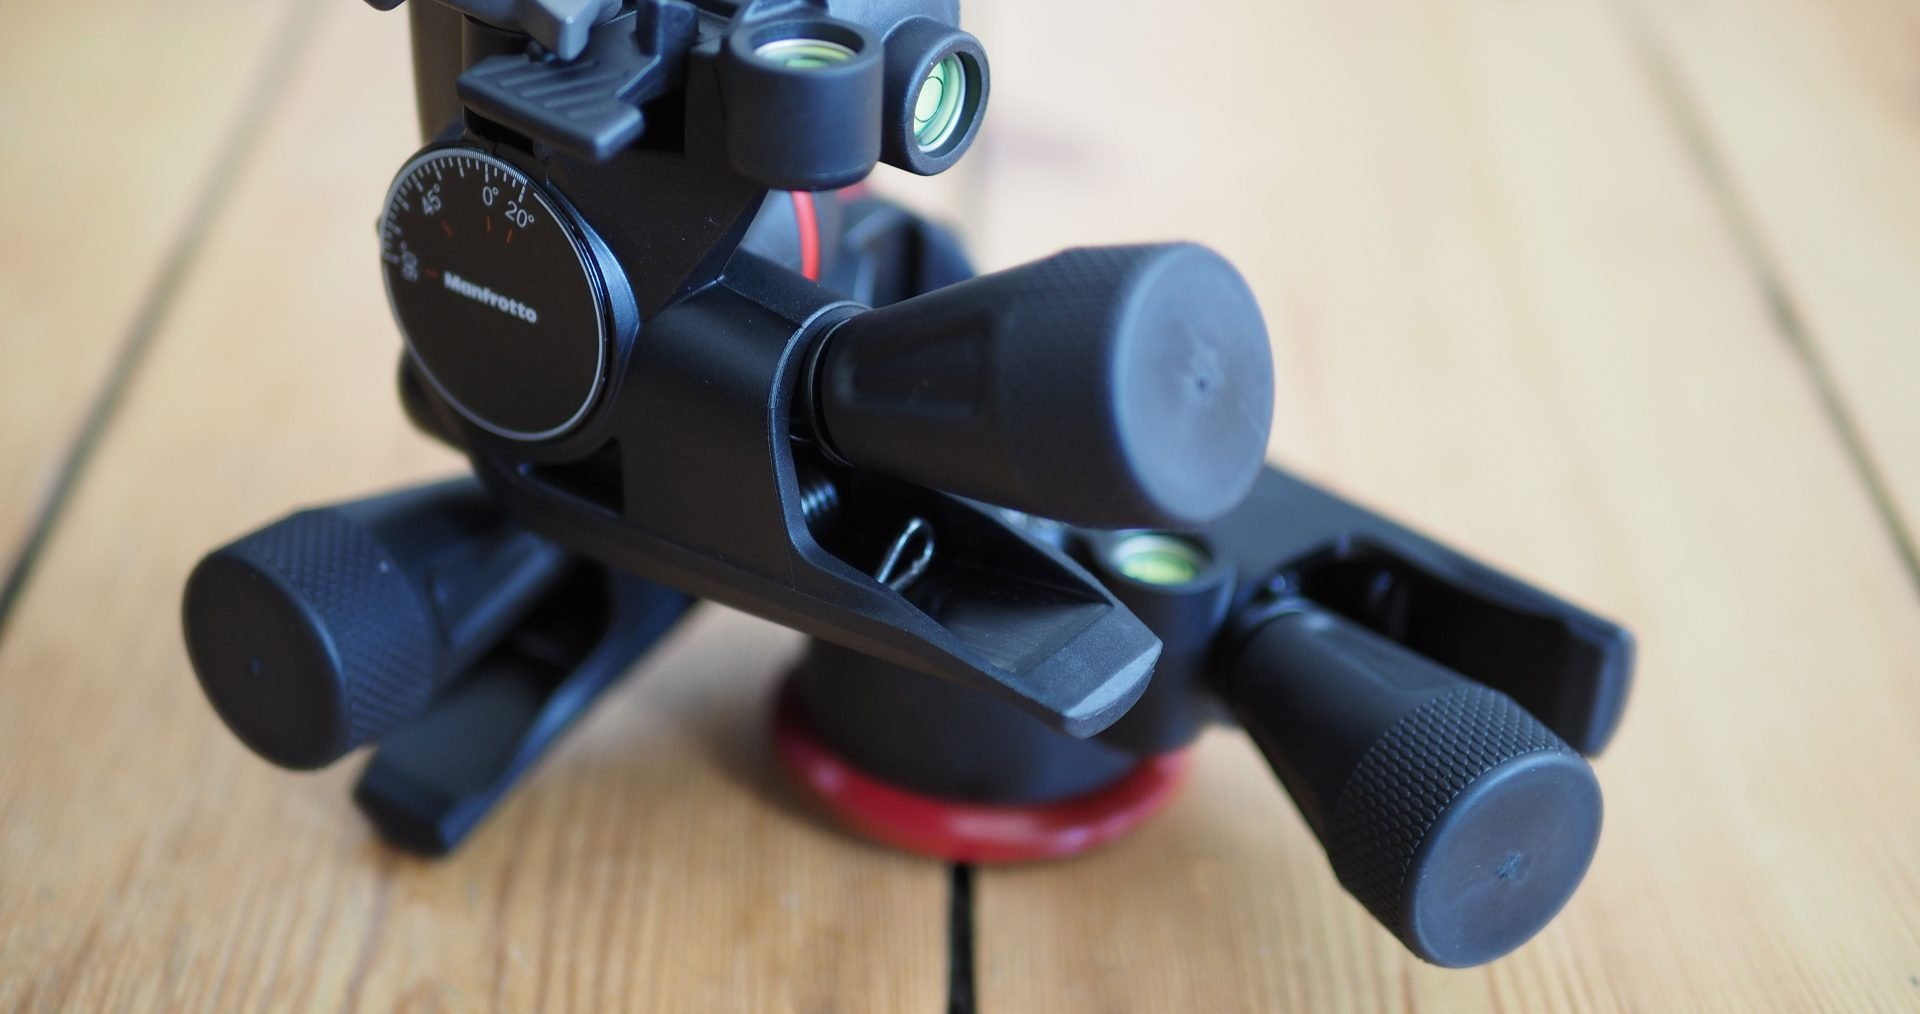 Manfrotto_XPRO_geared_header